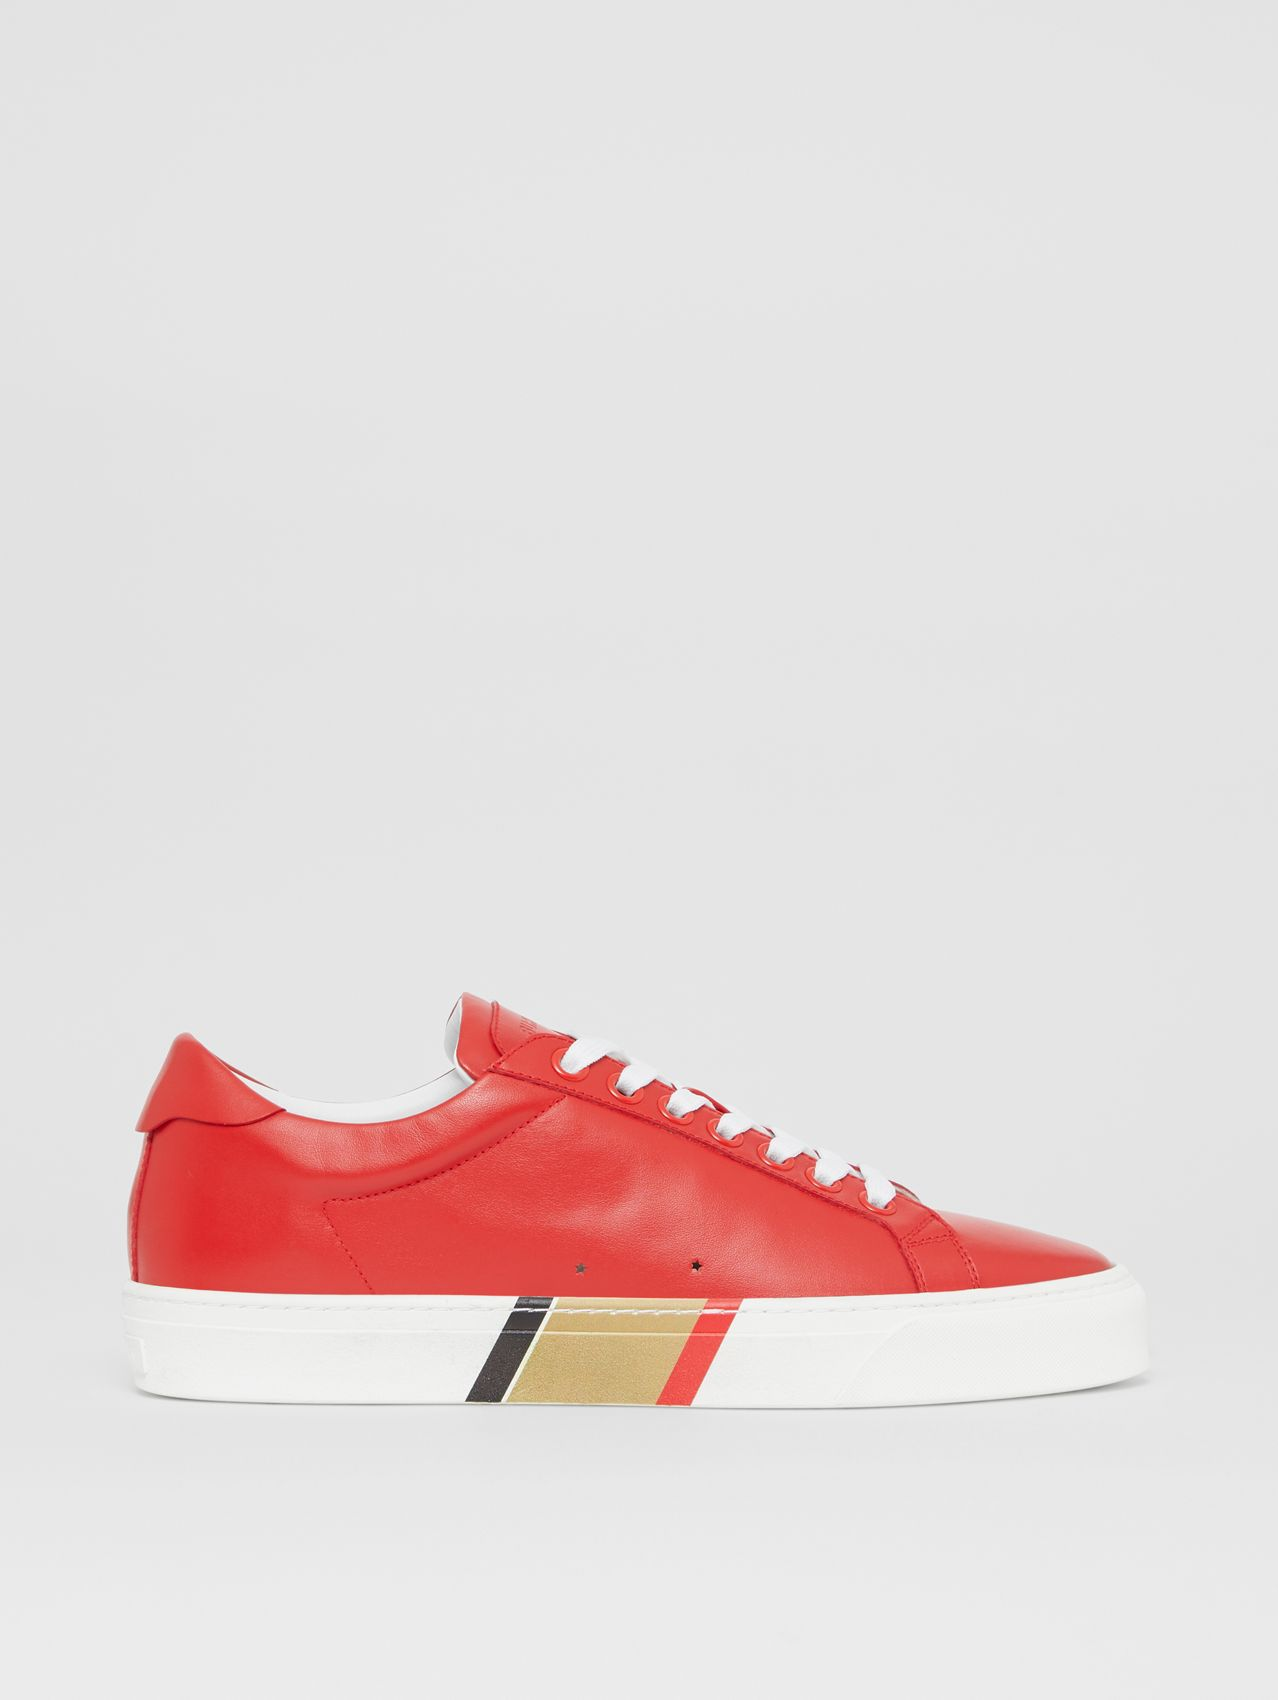 Bio-based Sole Leather Sneakers in Bright Red